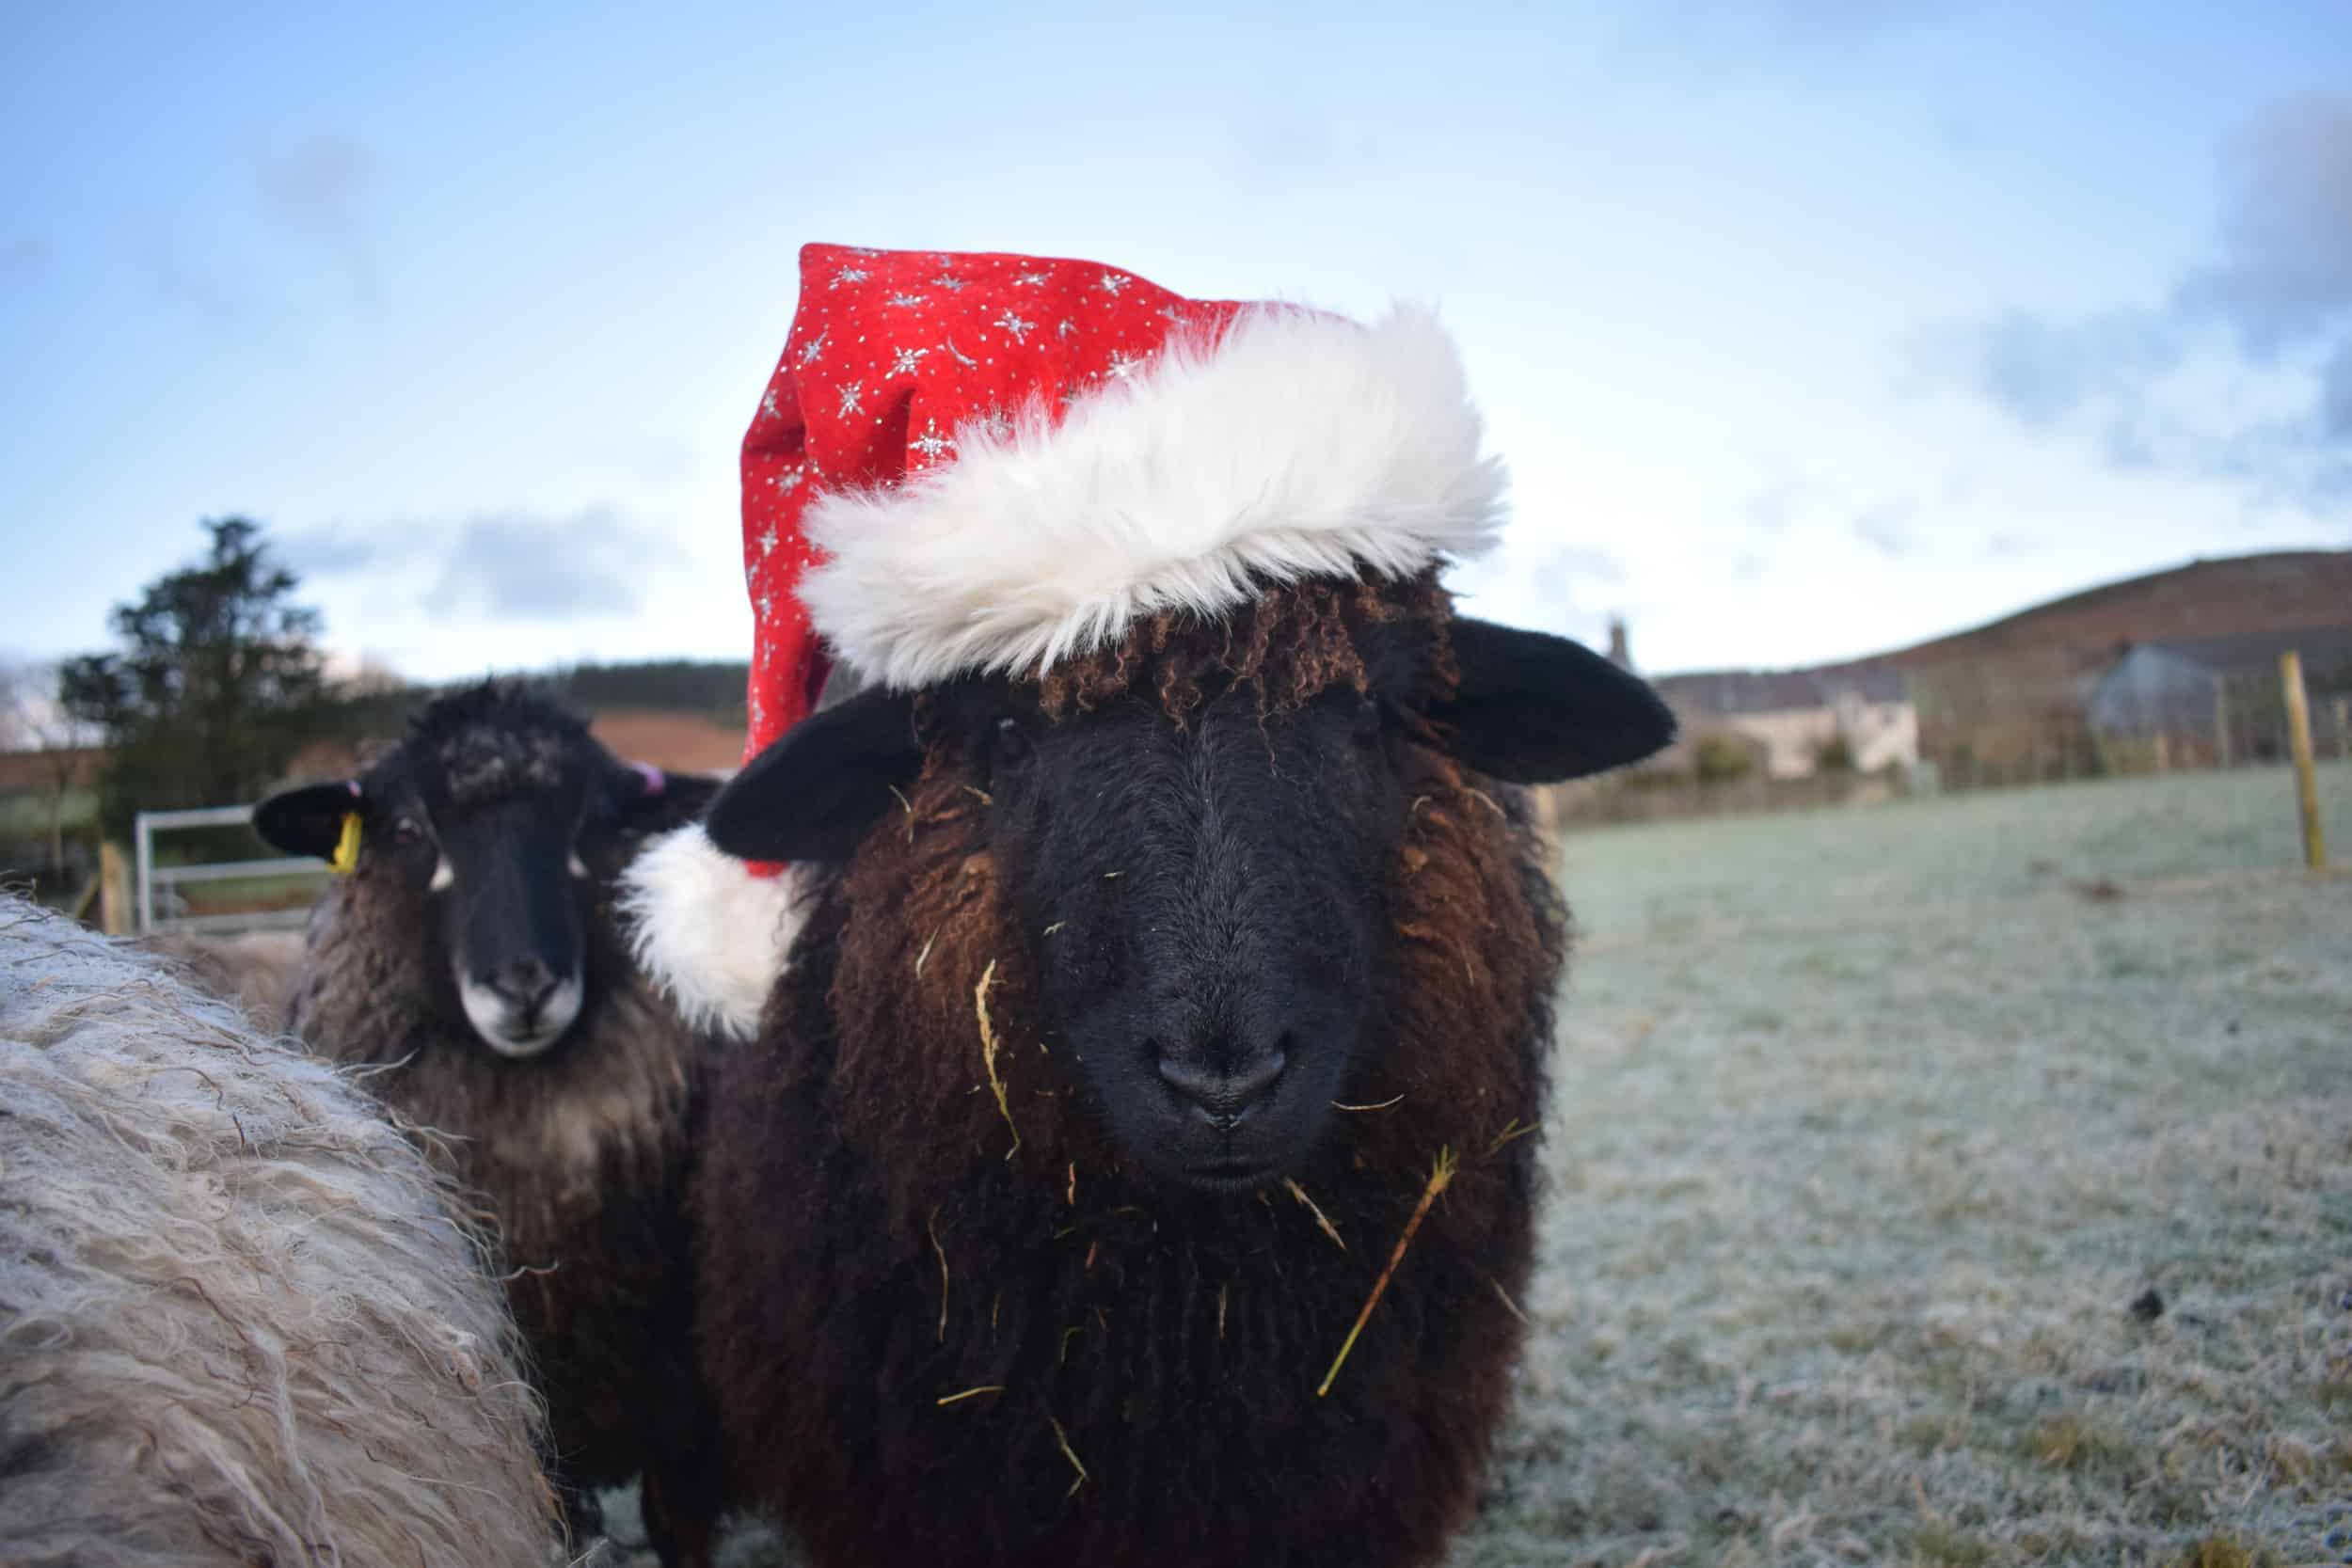 Spot santa hat xmas valais blacknose cross zwables texel sheep pet sheep ethical sustainable wool gifts patchwork sheep black 3